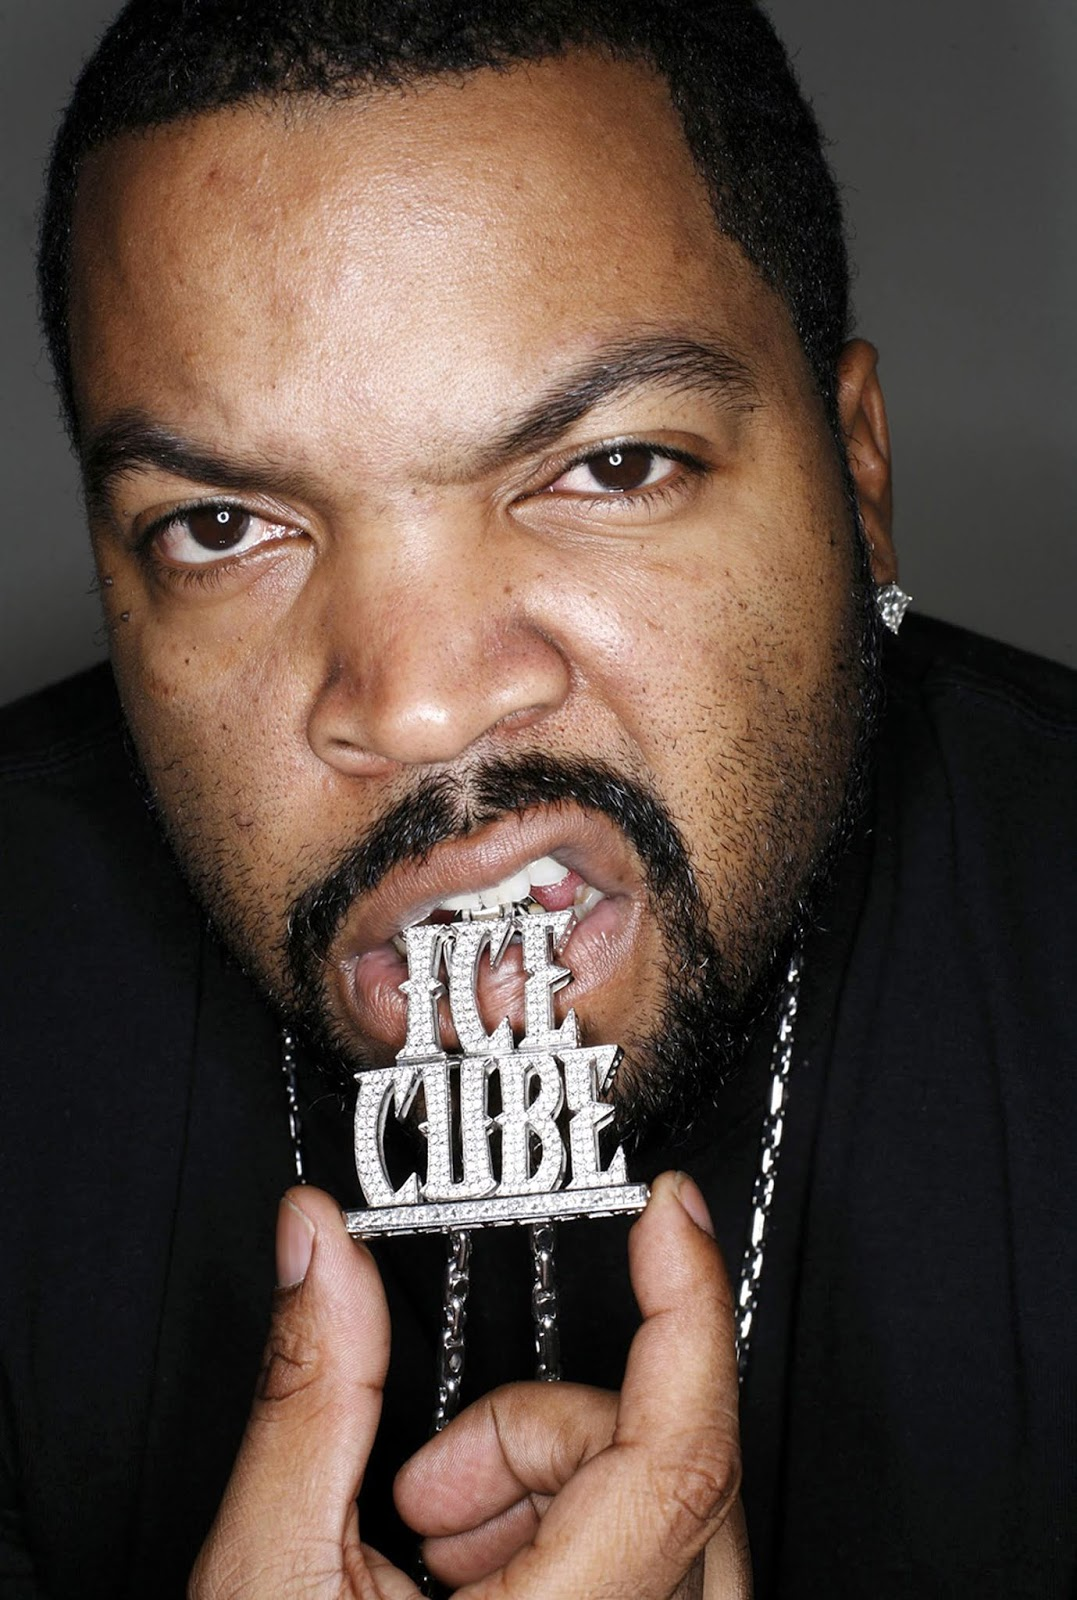 Top 5 Best Ice Cube Movies